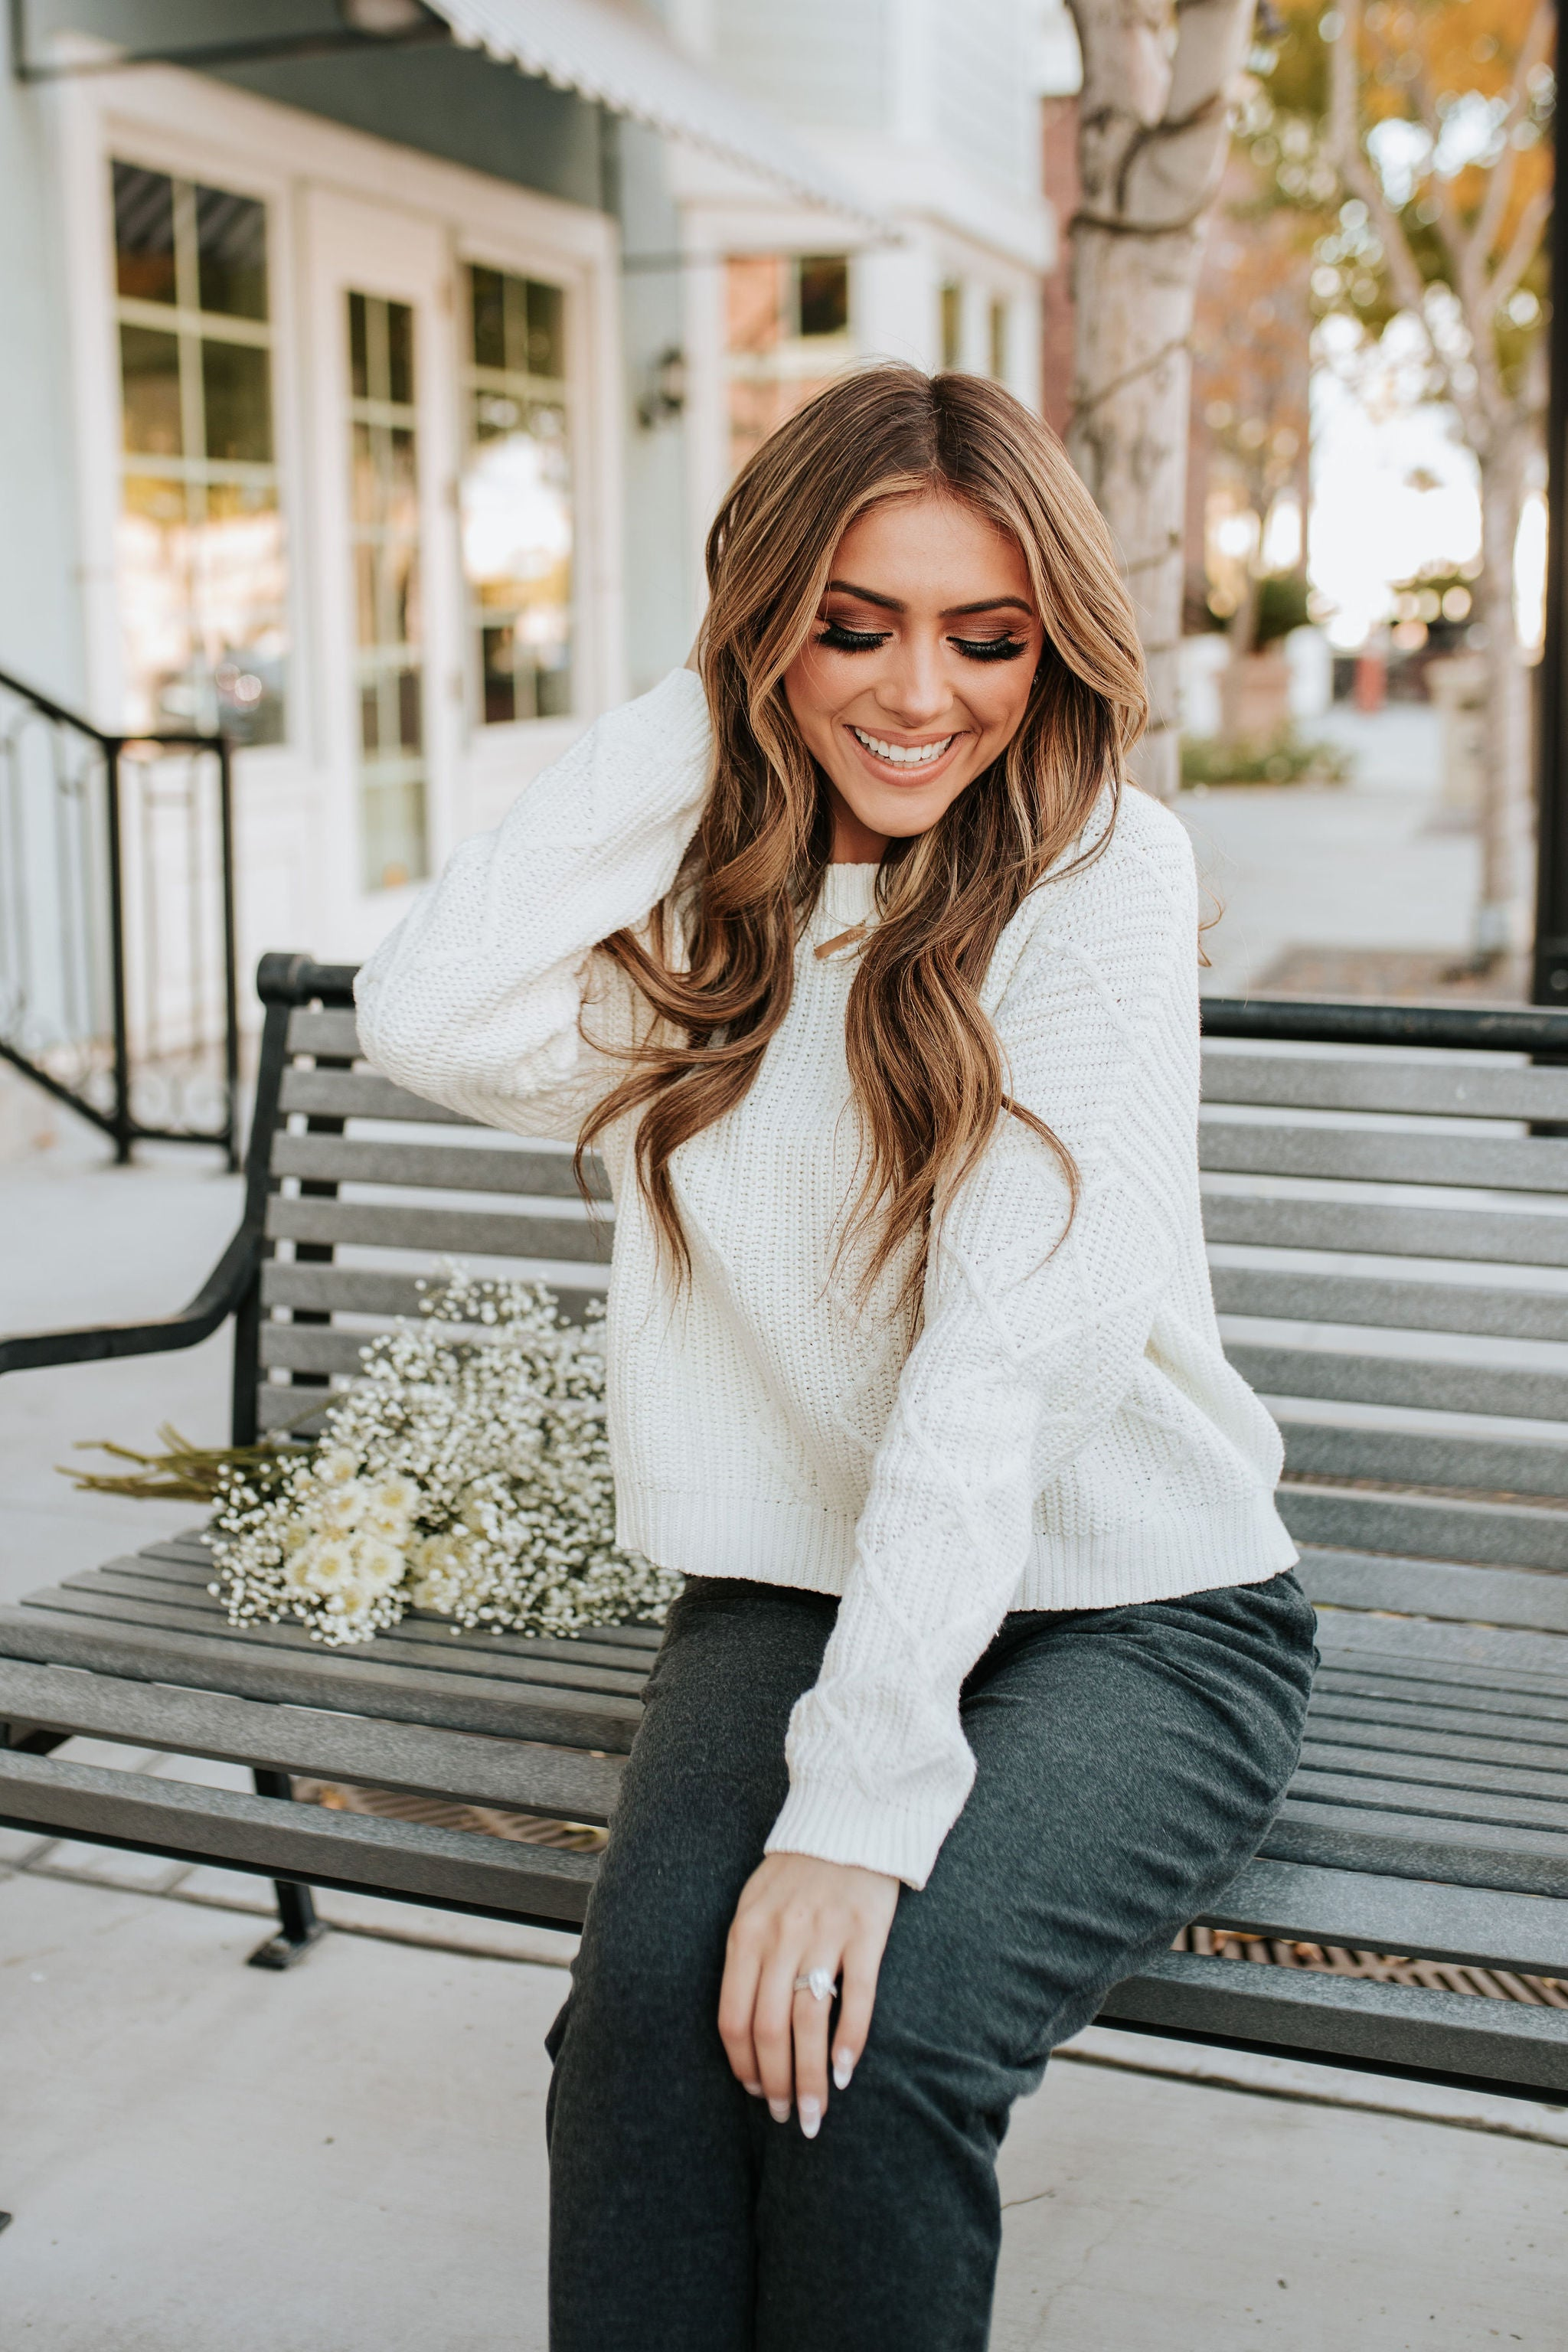 THE CALGARY CROPPED SWEATER IN IVORY